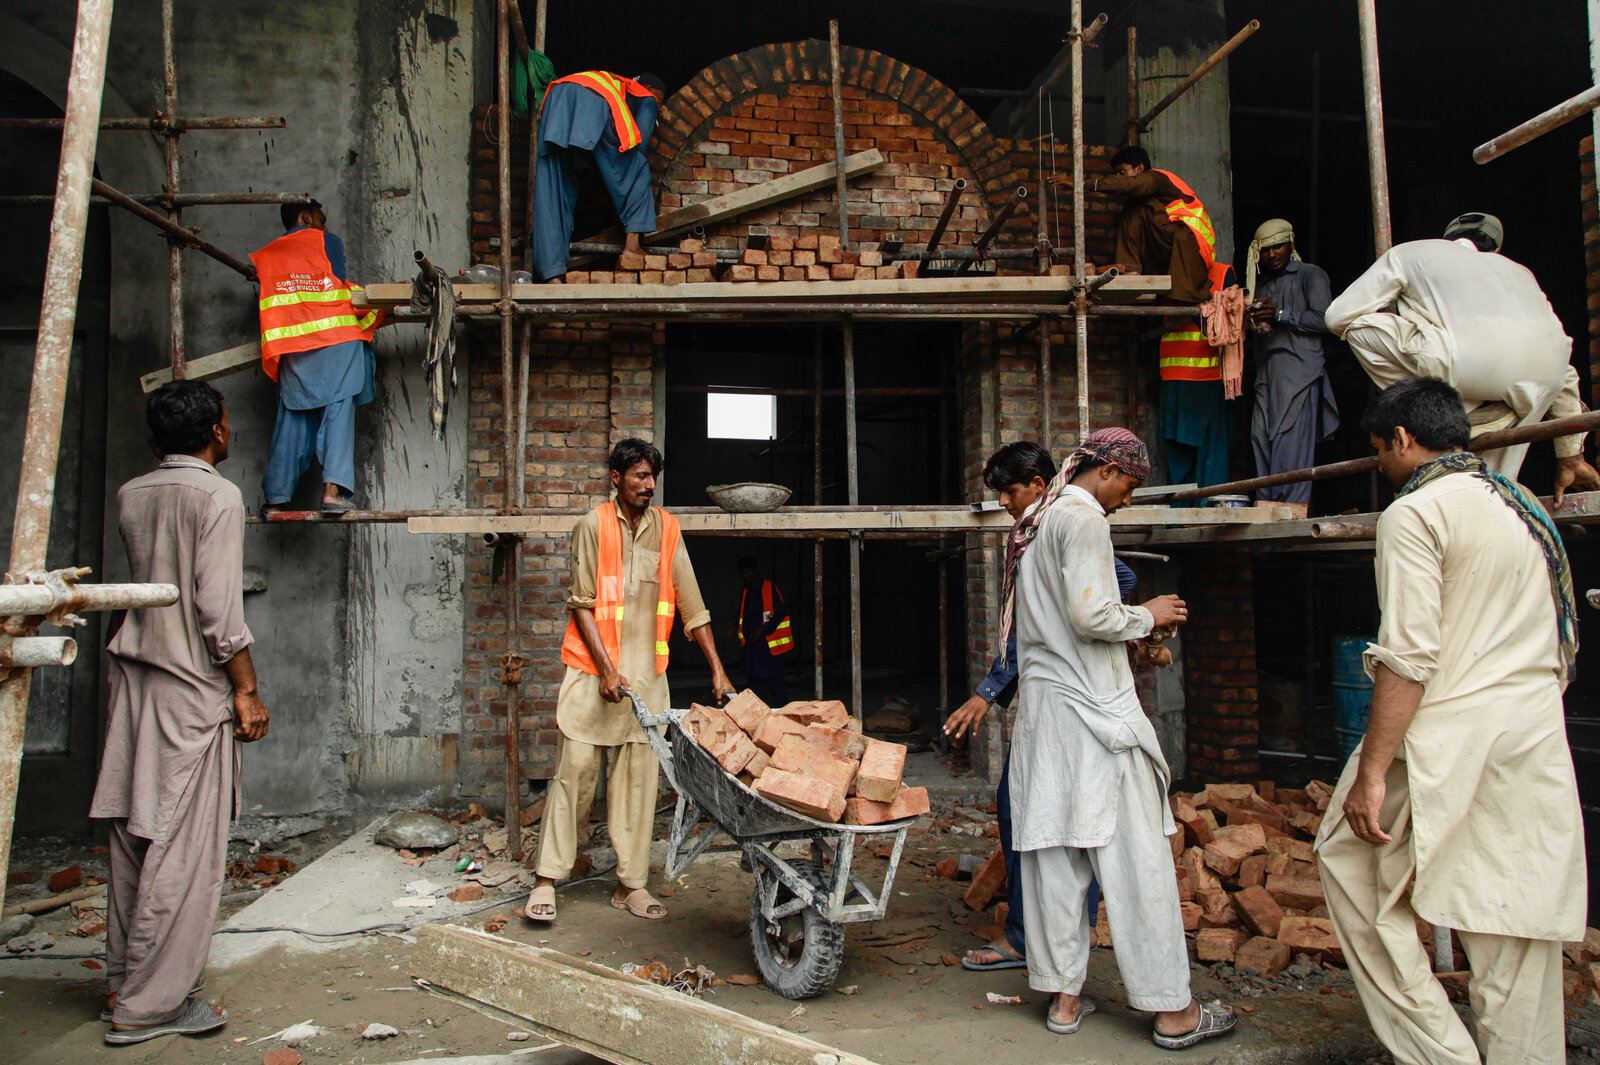 Home to have angered locals is a 30 000 square foot creation of hadid - Laborers Work To Prepare The New Pakistan History Museum In Lahore S Greater Iqbal Park The Museum A Project Of The Provincial Government And The Private